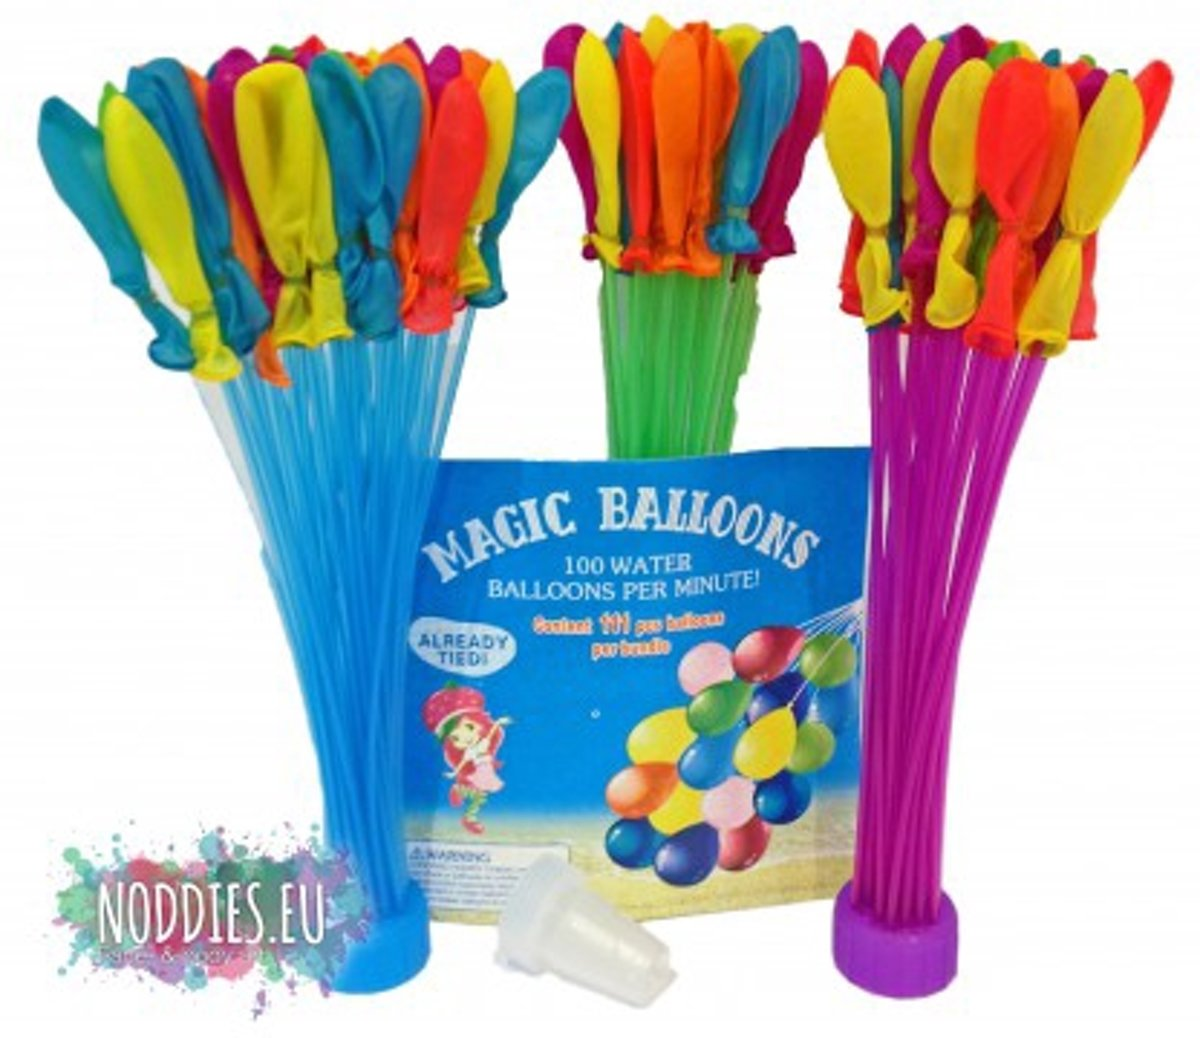 Magic Balloons - Waterballonnen